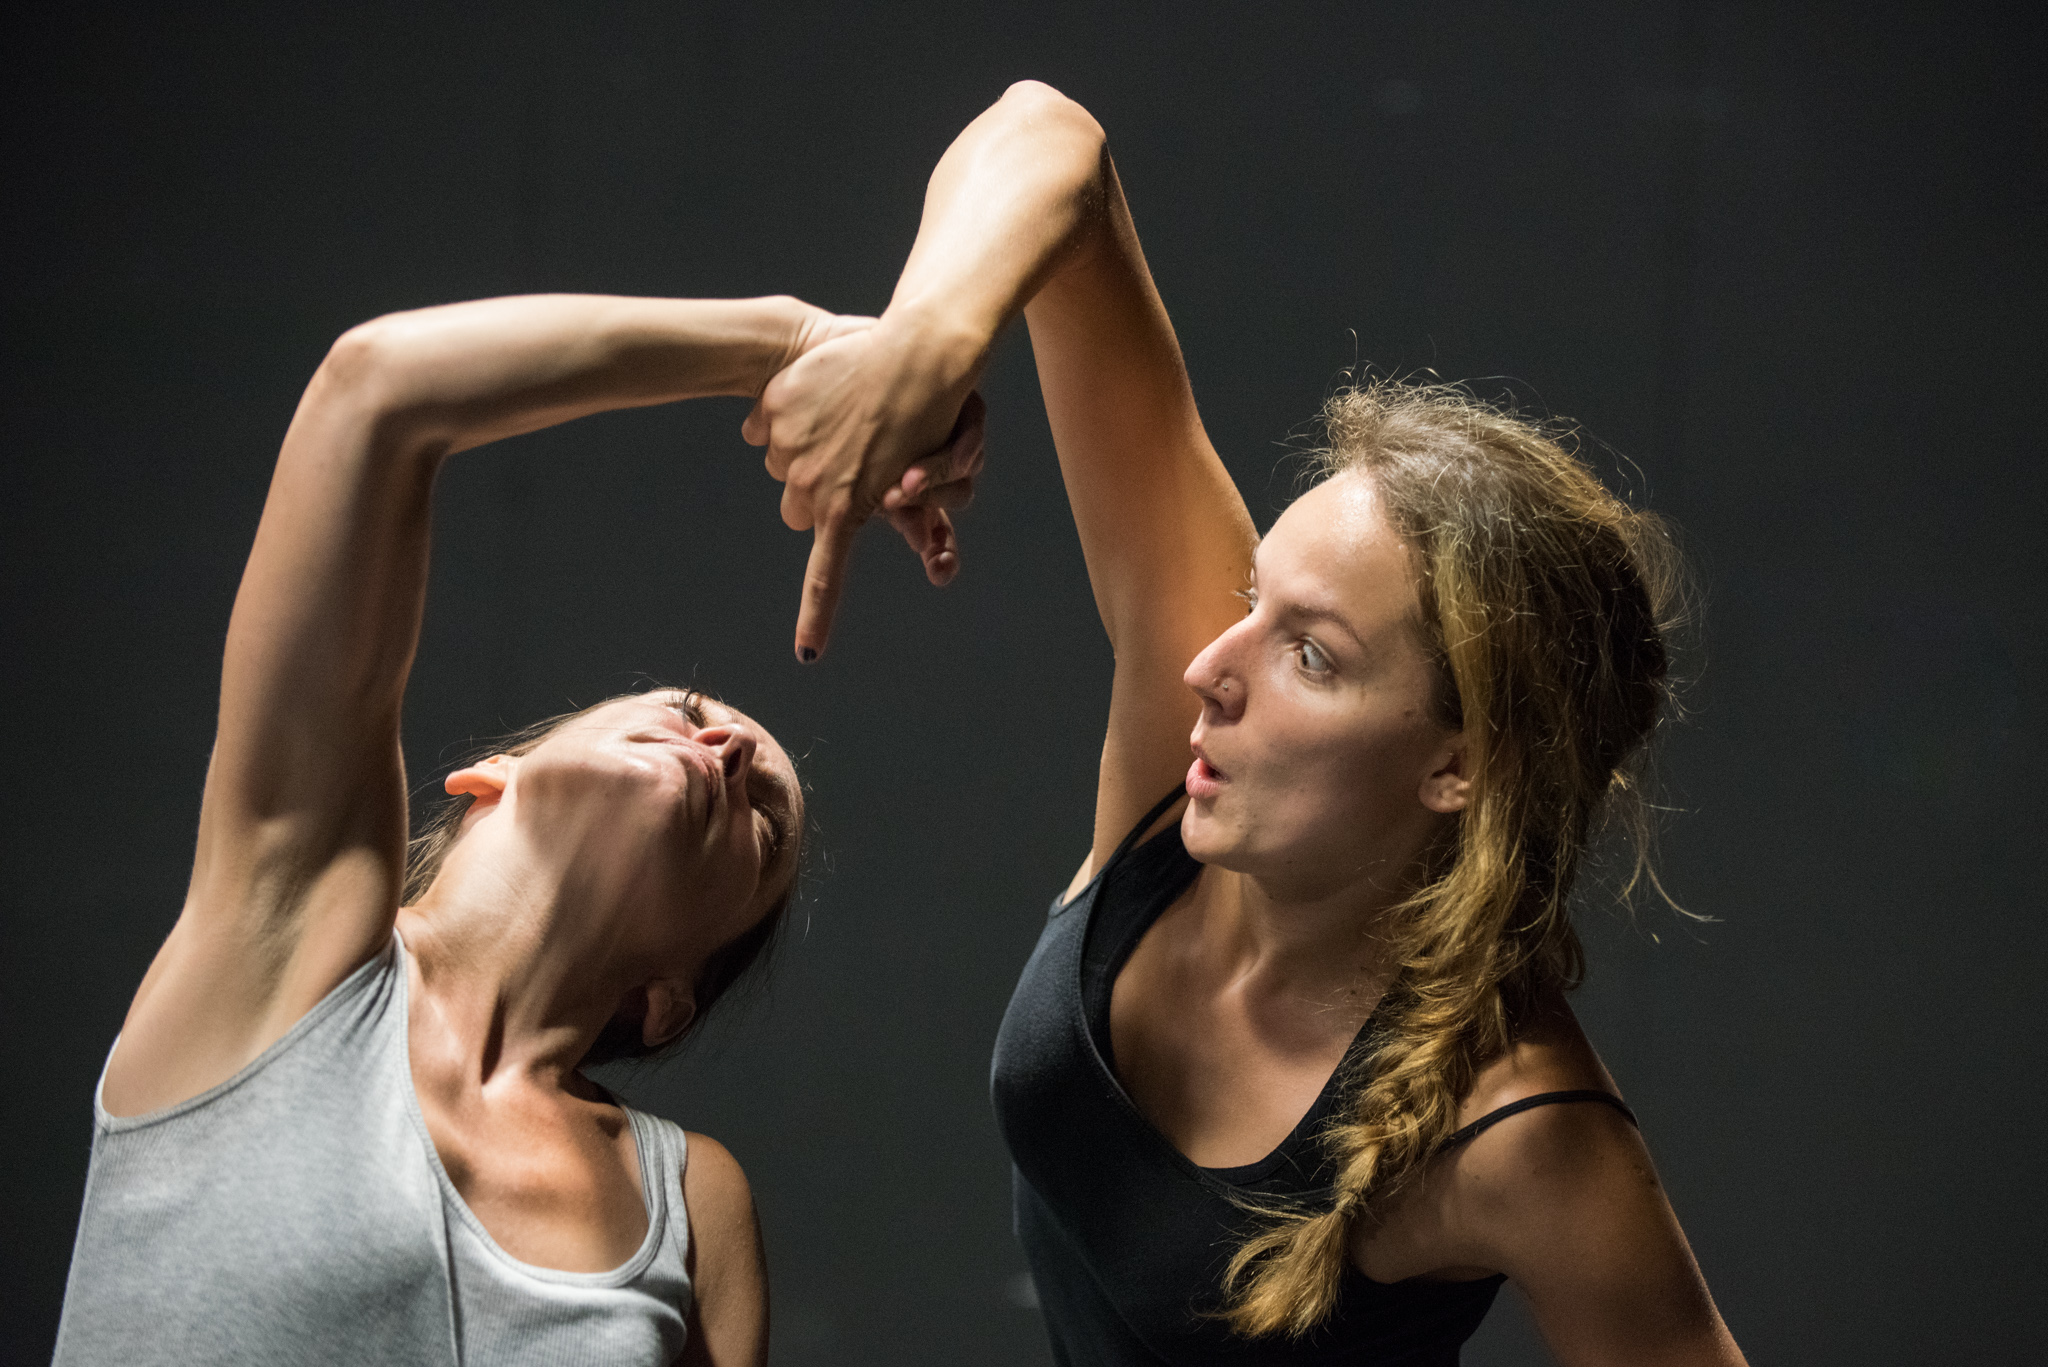 Tmesis Theatre: Physical Fest Workshops: Physical theatre & the Playful performer